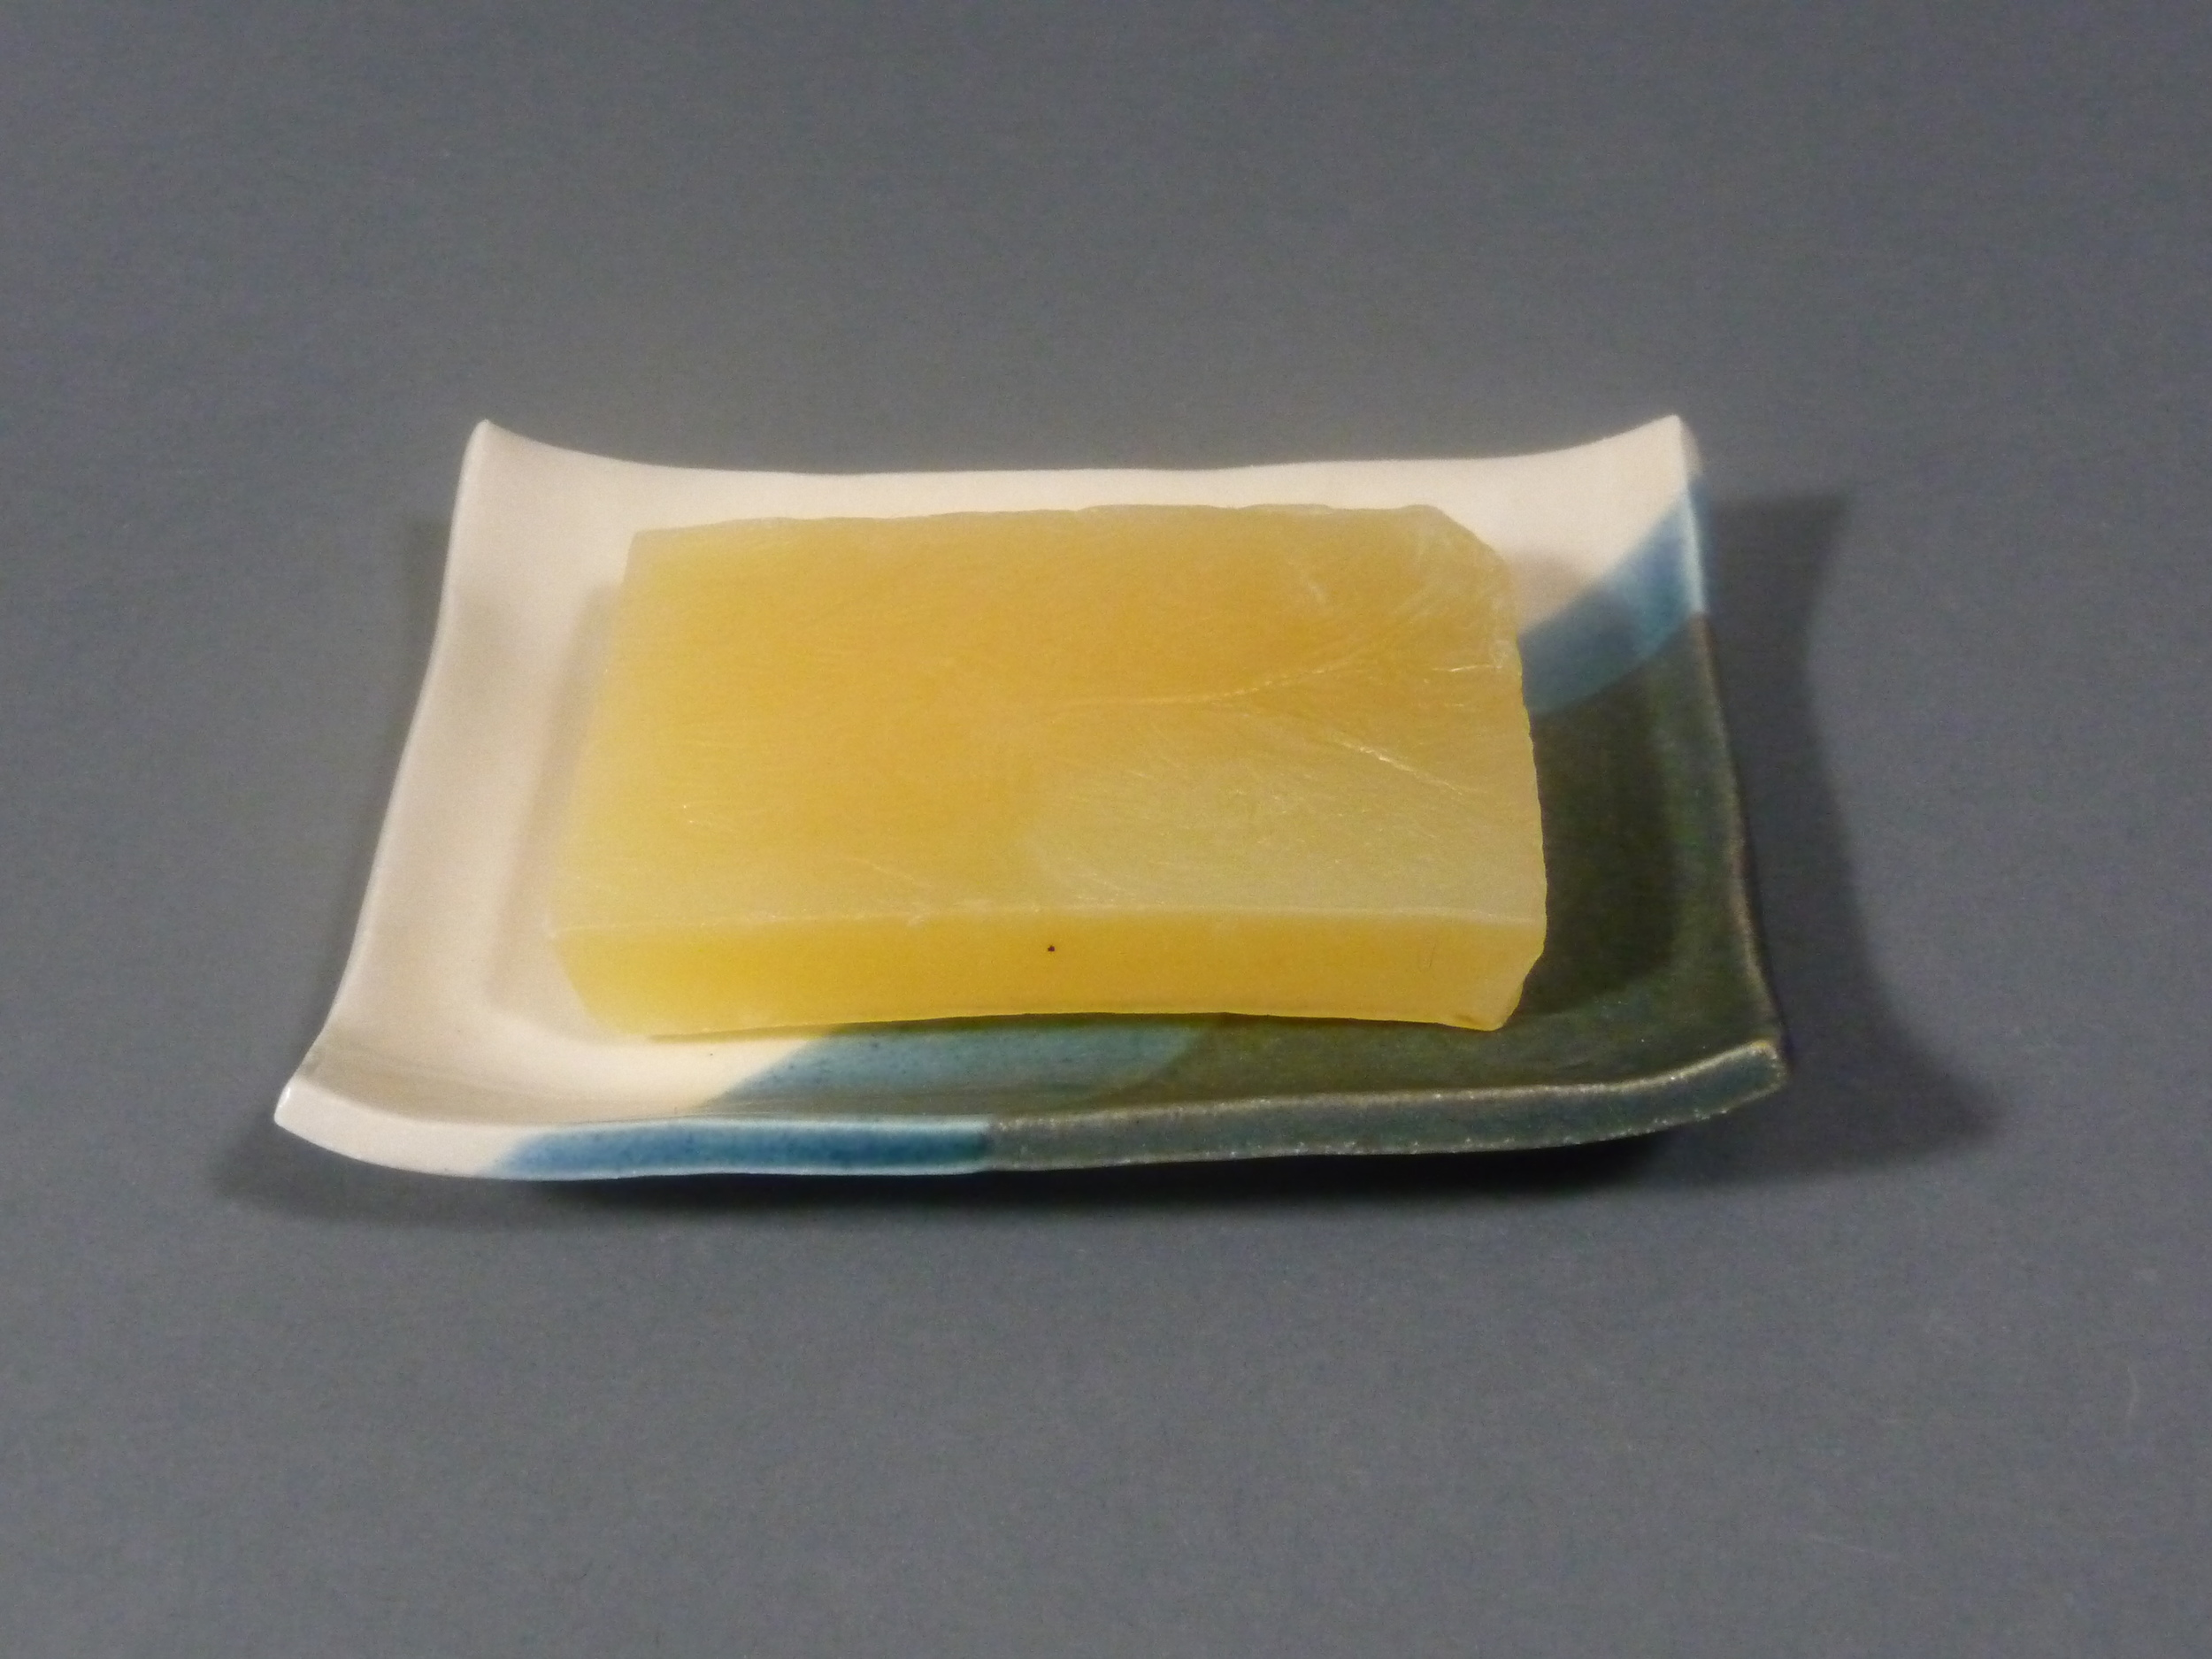 Green dish with soap.JPG